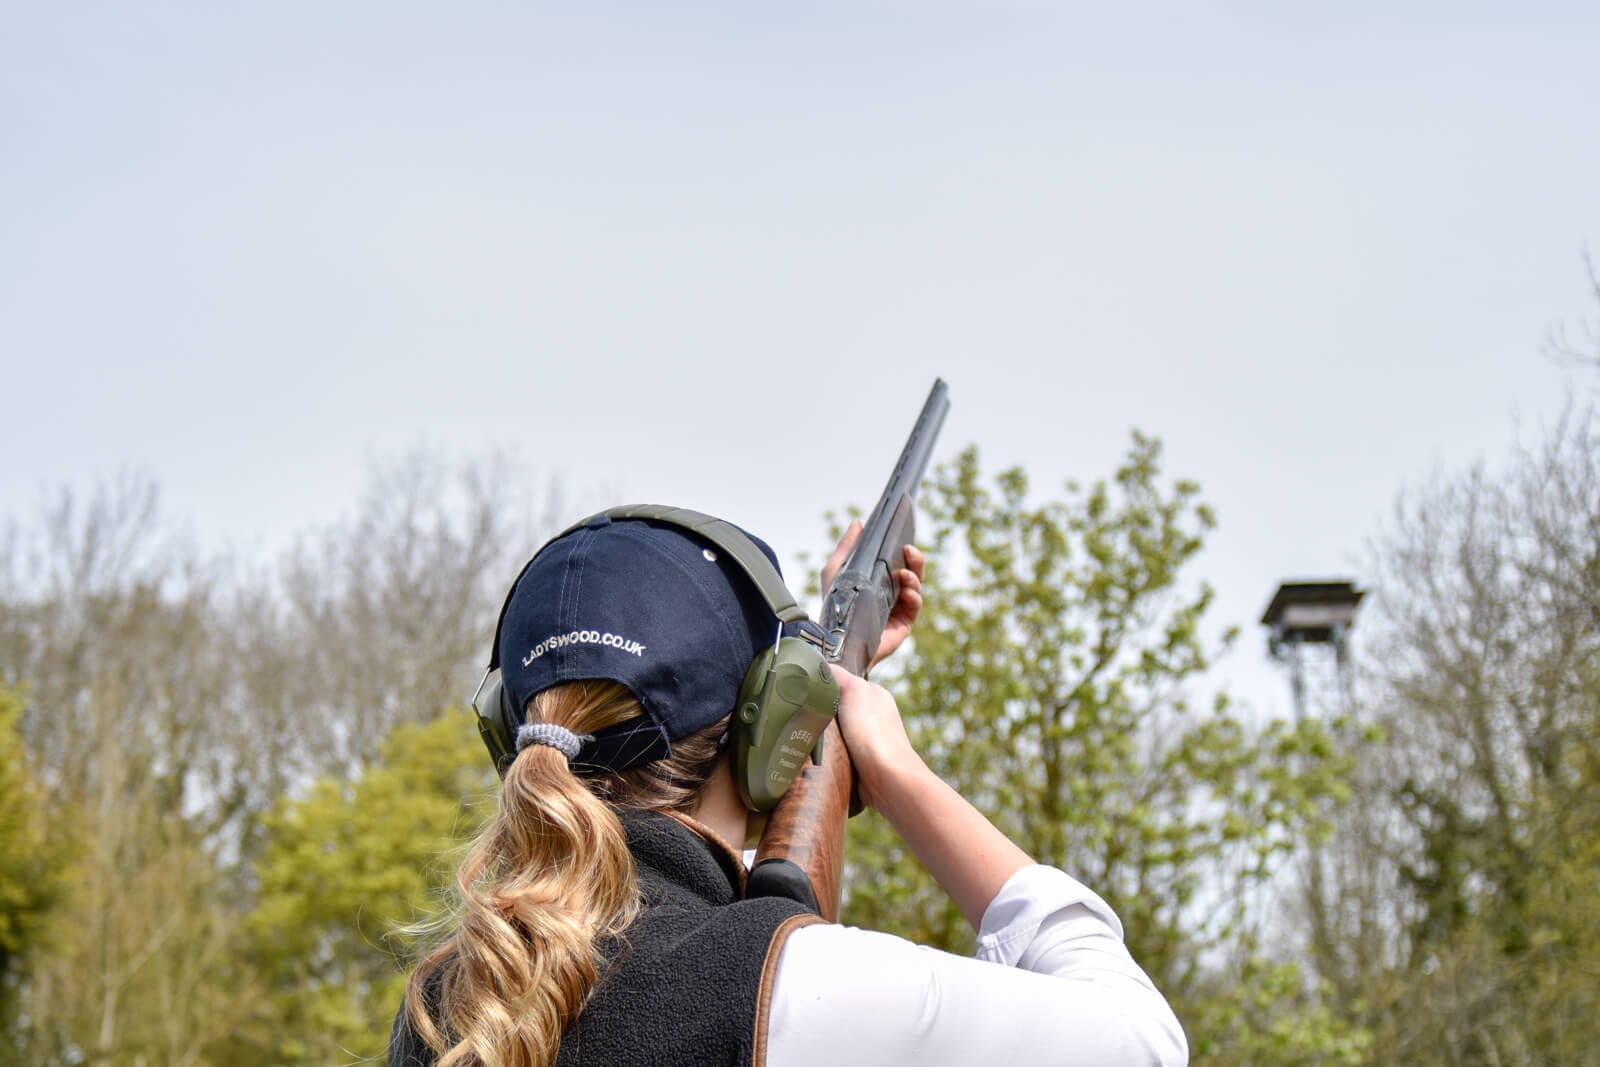 Aiming while clay pigeon shooting at Lady's Wood Shooting School